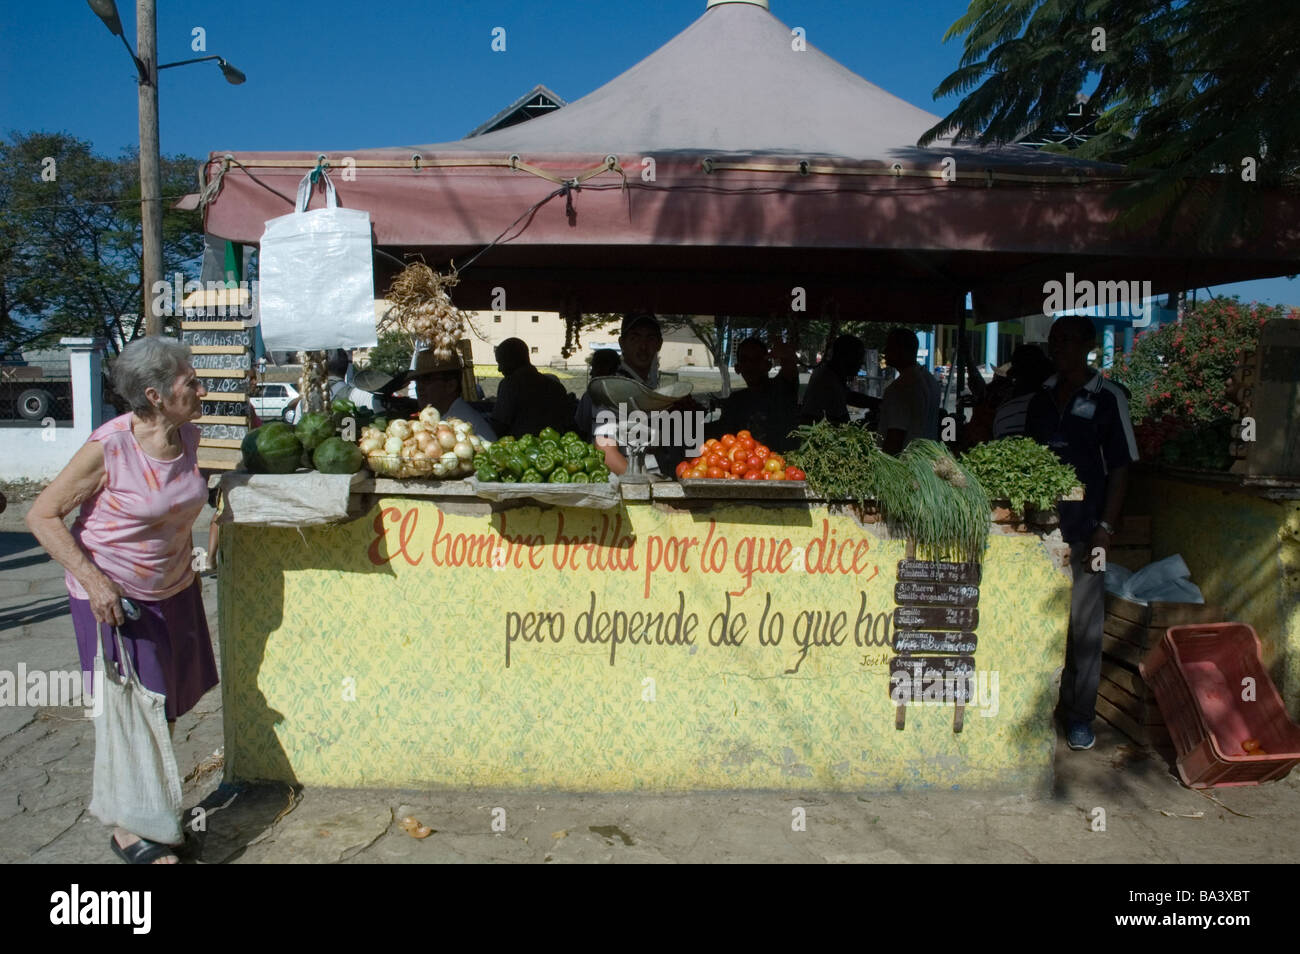 CUBA Santiago de Cuba Market stall with quotation from Jose Marti 'A man shines for what he says but it depends - Stock Image